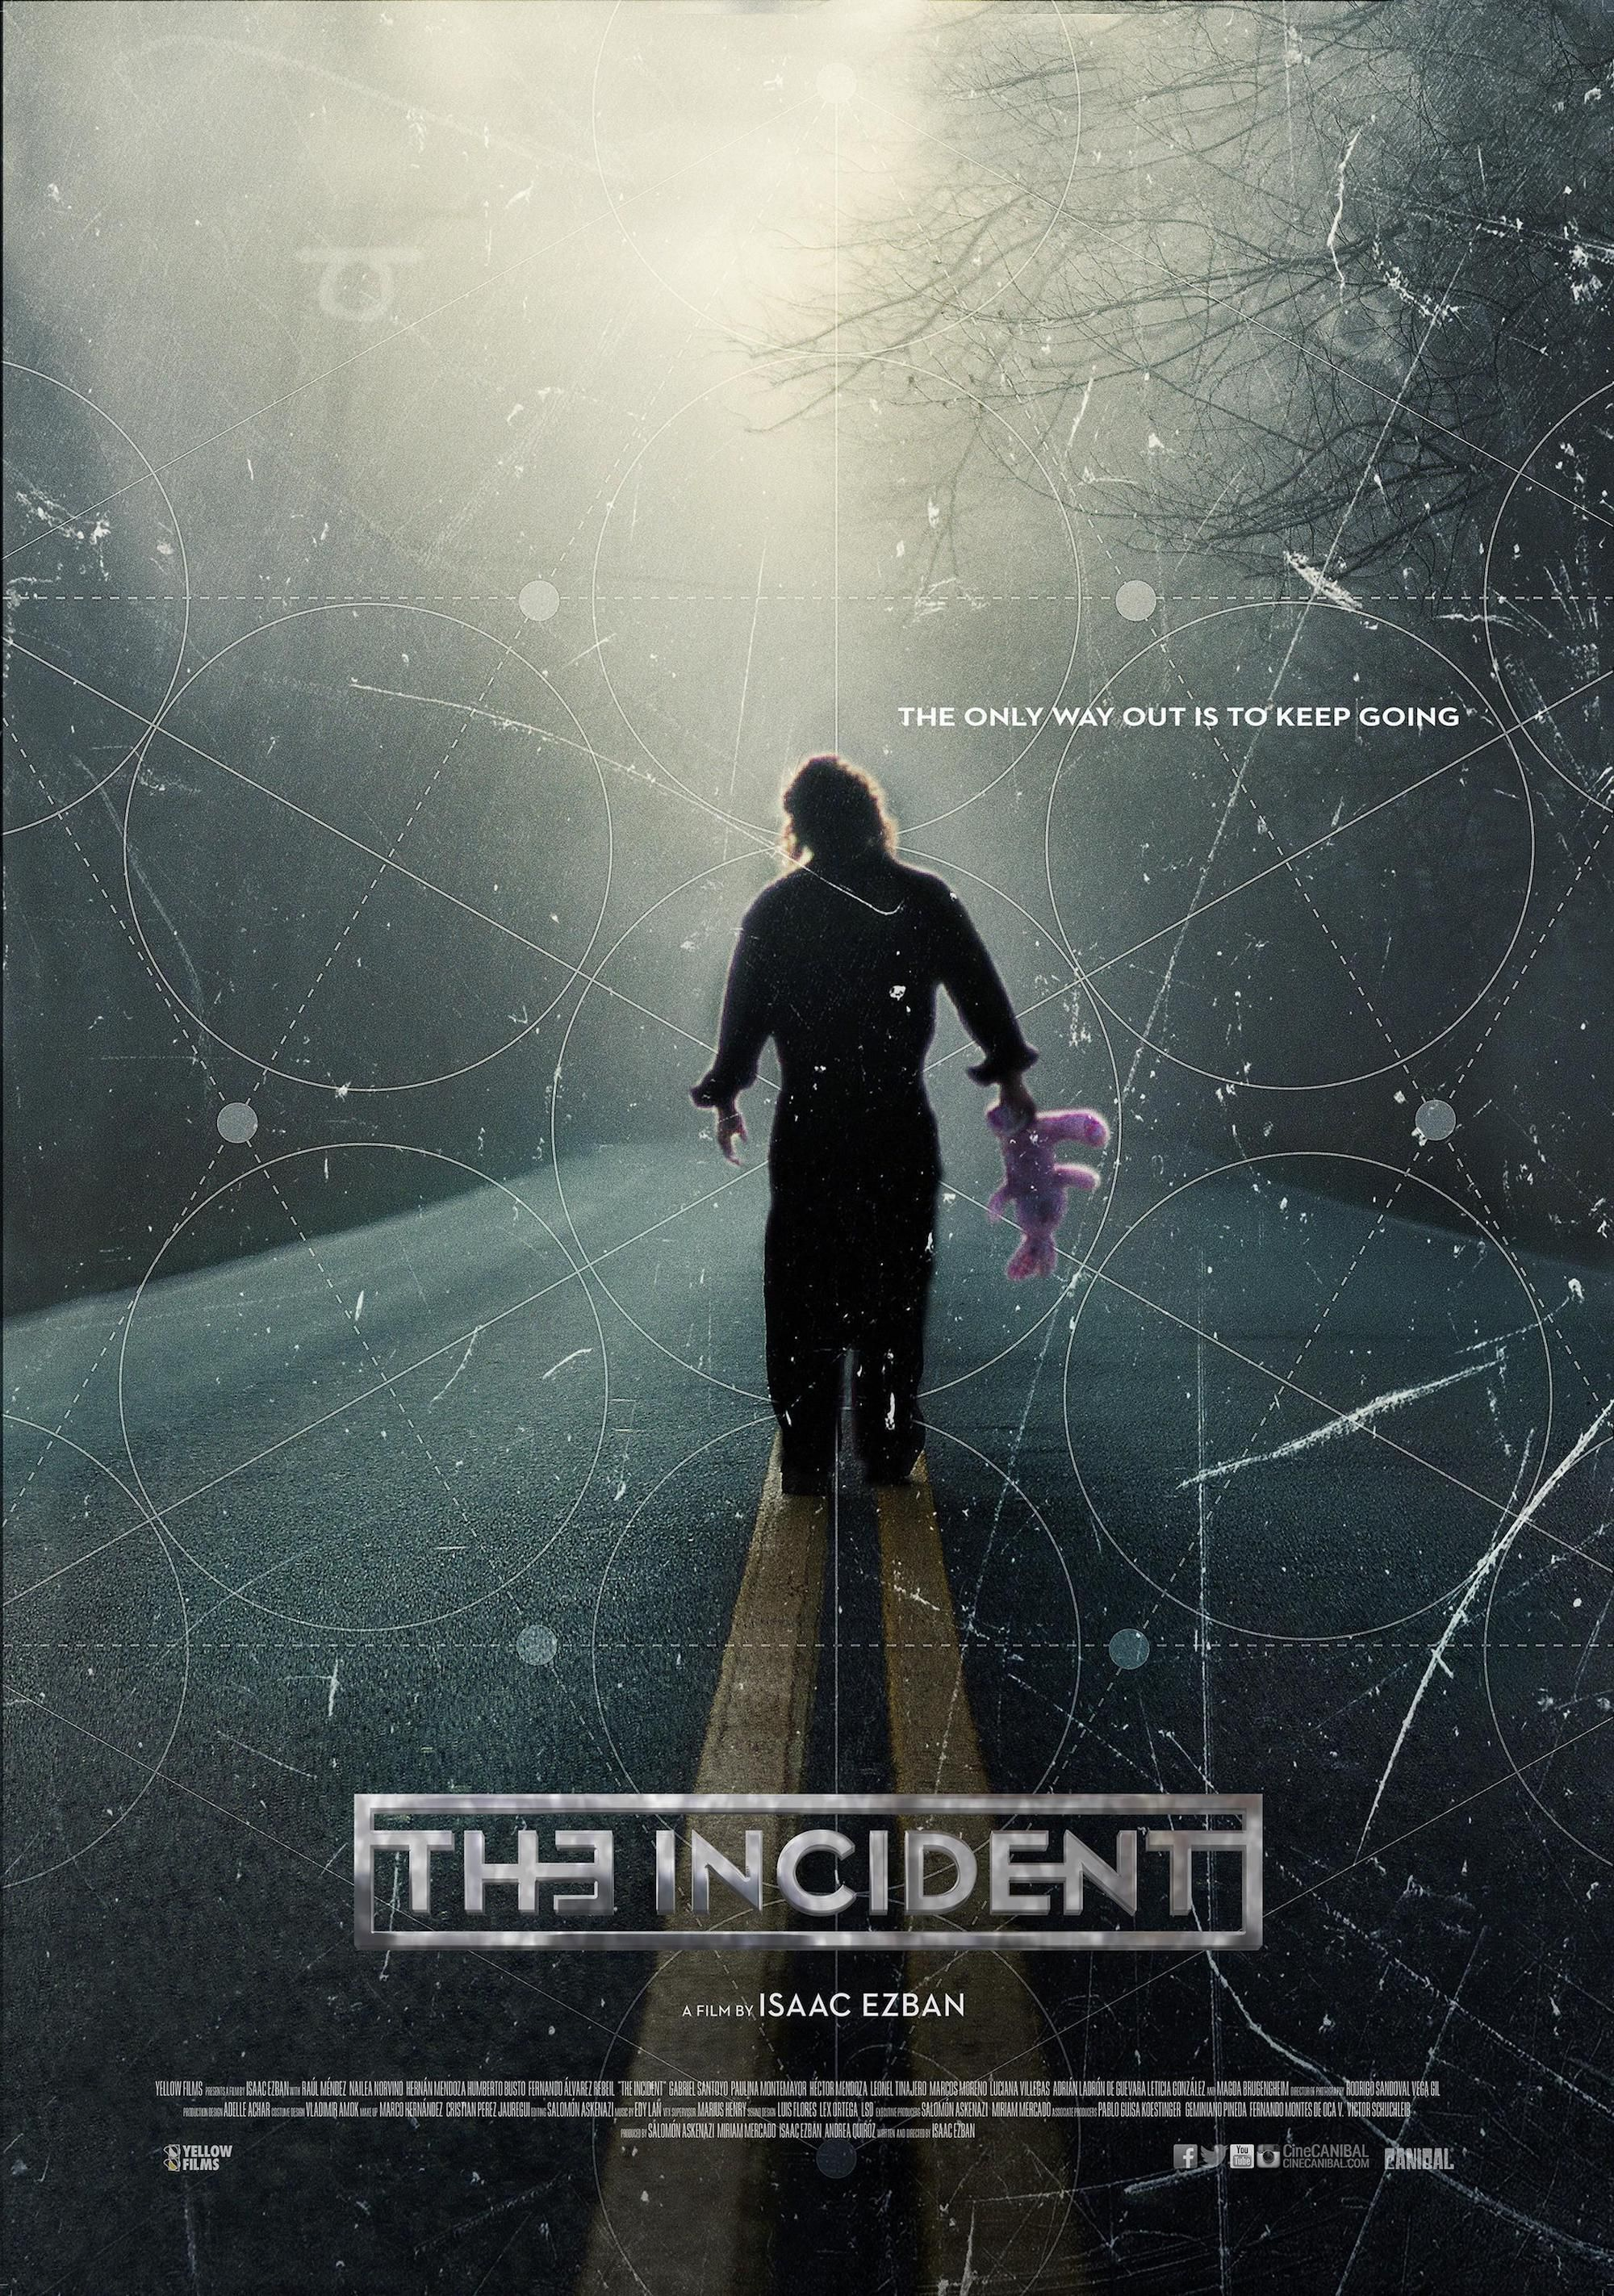 Risultati immagini per the incident isaac ezban film poster